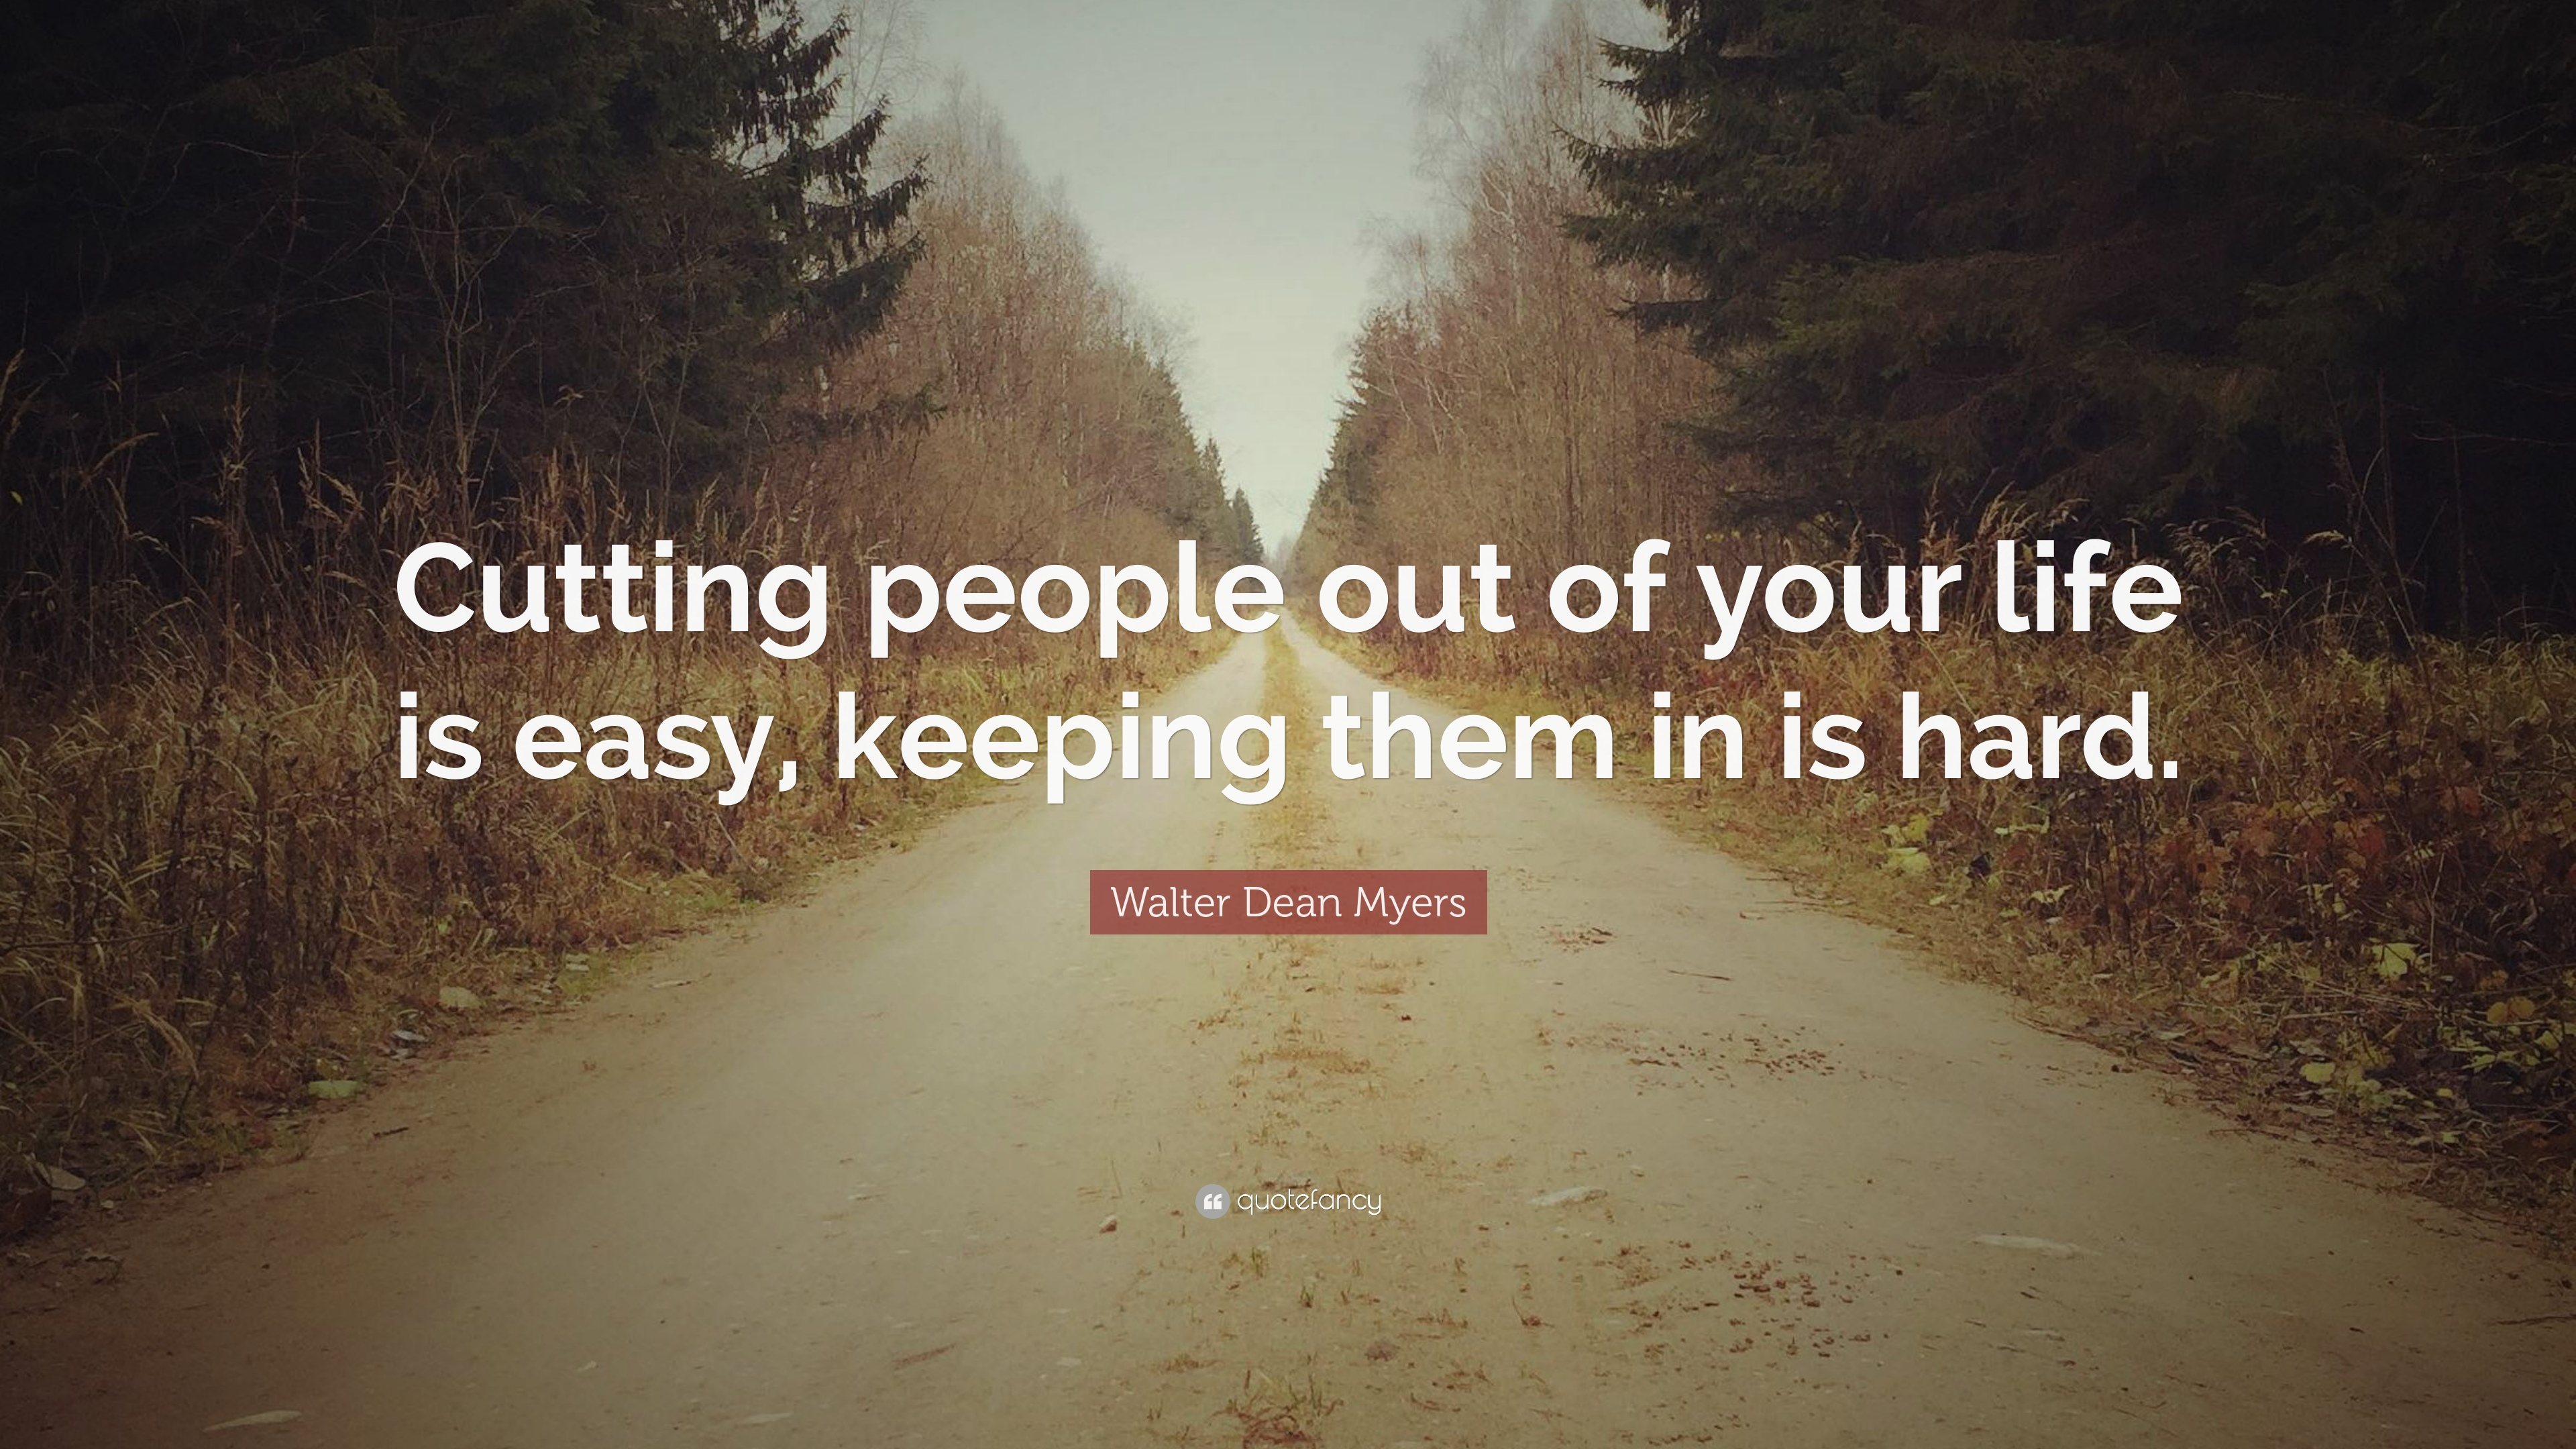 Walter Dean Myers Quote Cutting People Out Of Your Life Is Easy